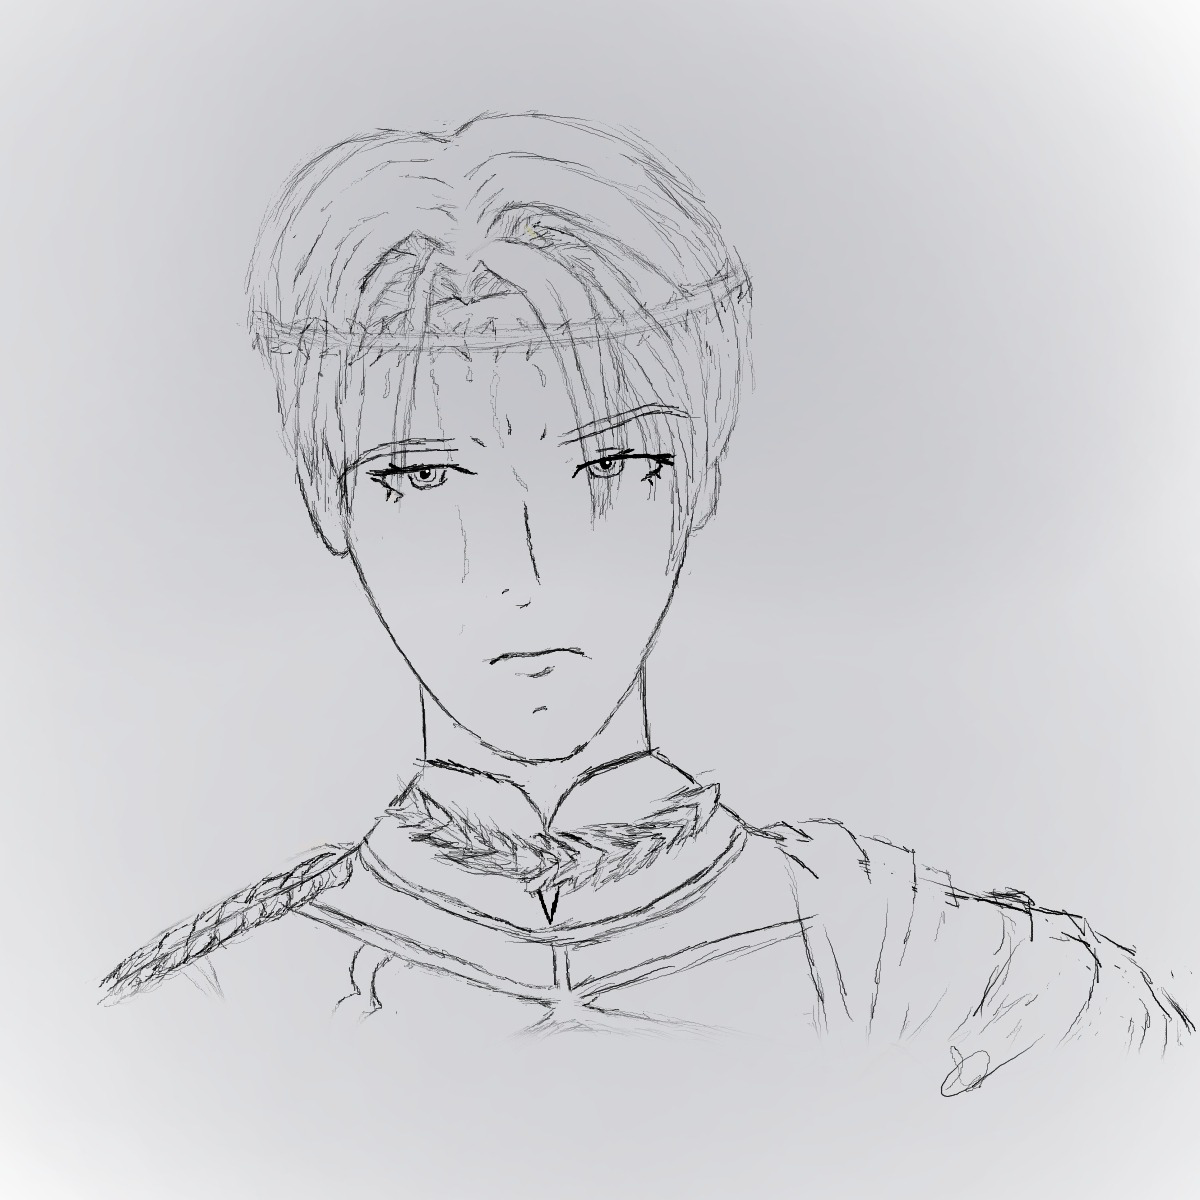 Kind Of Old Drawing Of Dimitri From Fire Emblem Three Houses